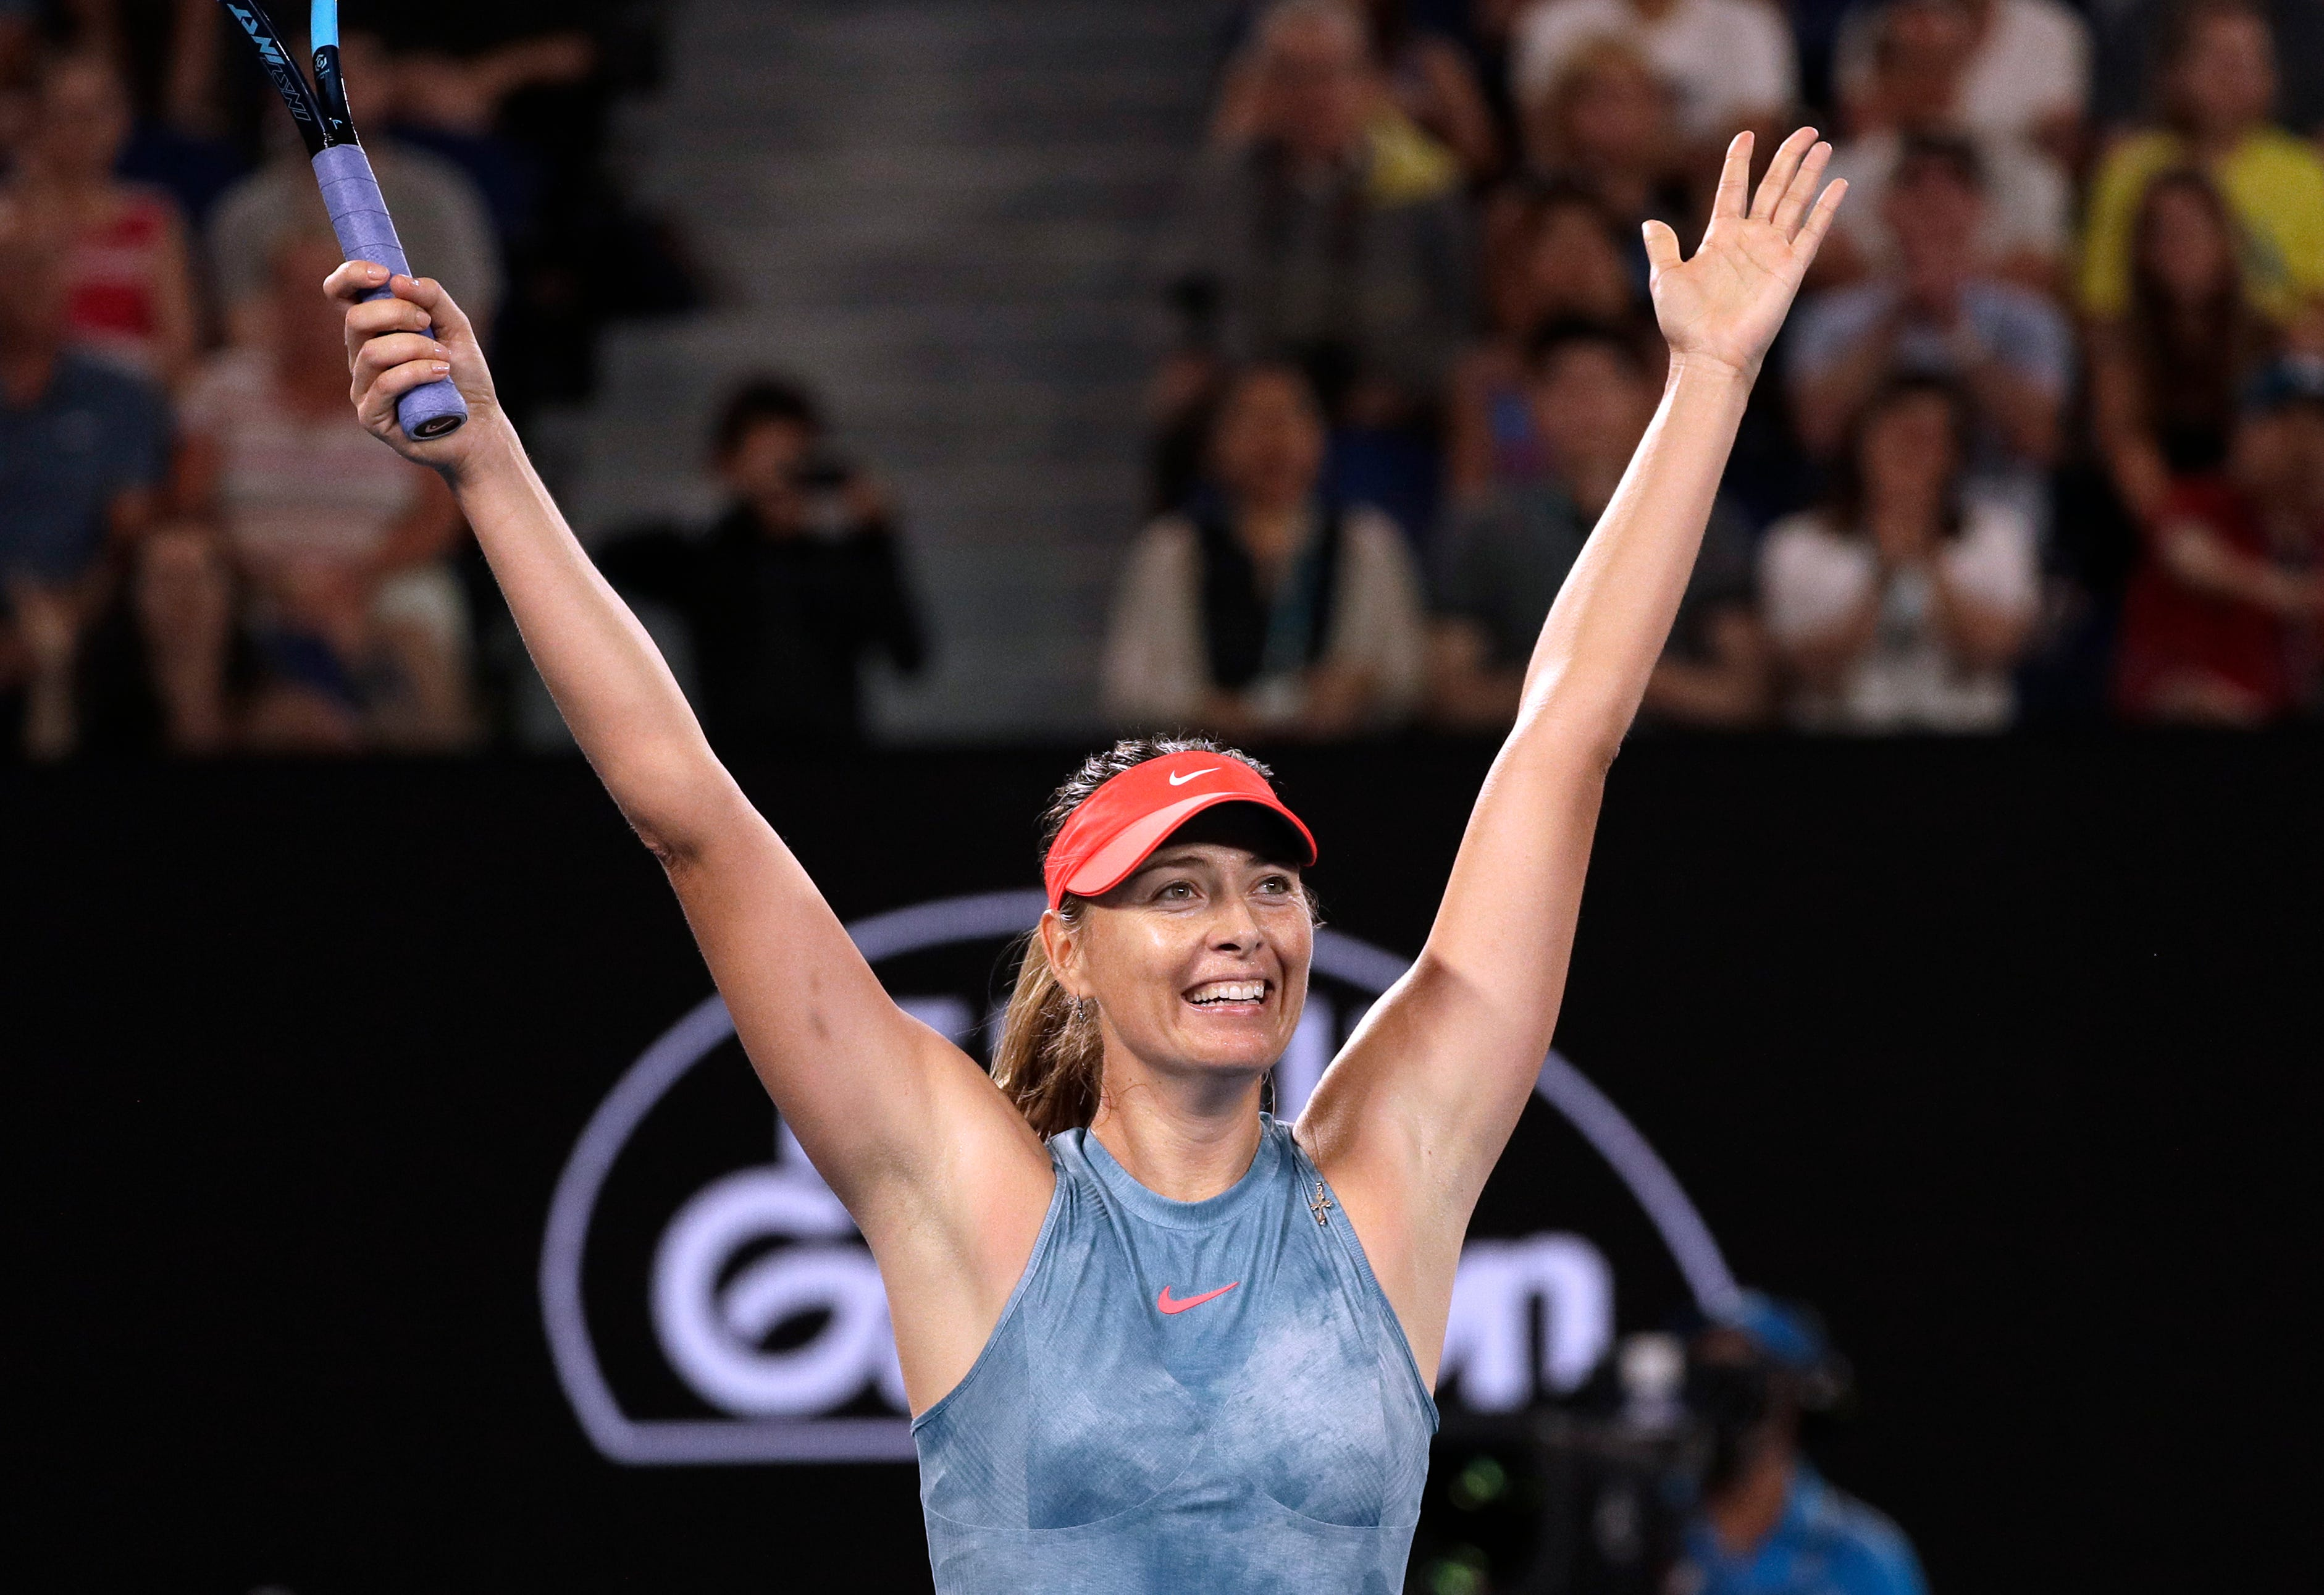 Maria Sharapova celebrates after defeating Caroline Wozniacki at the Australian Open.